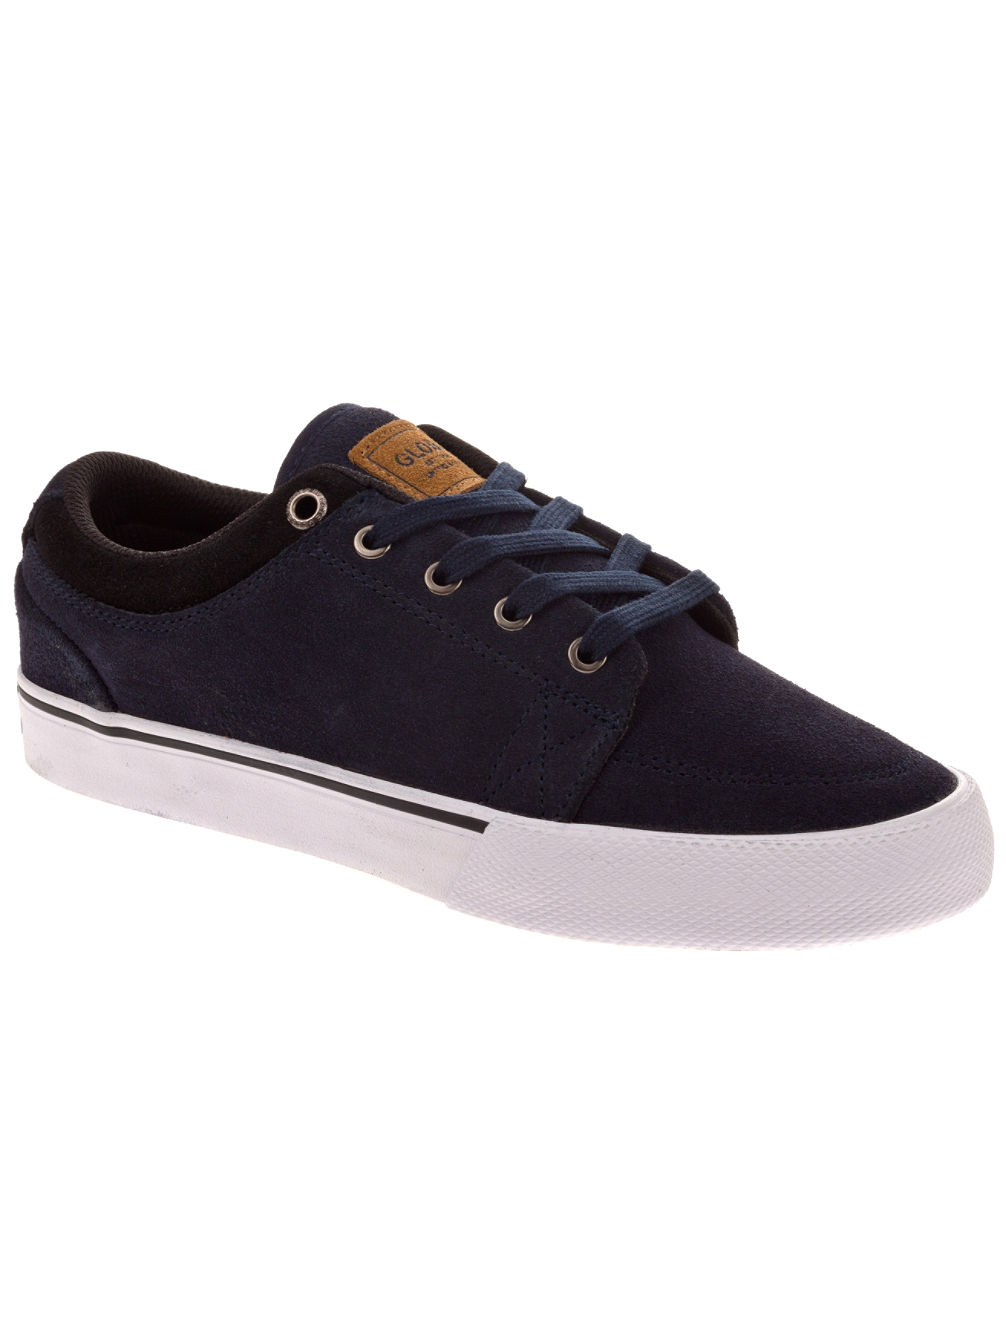 Gs Kids Skate Shoes